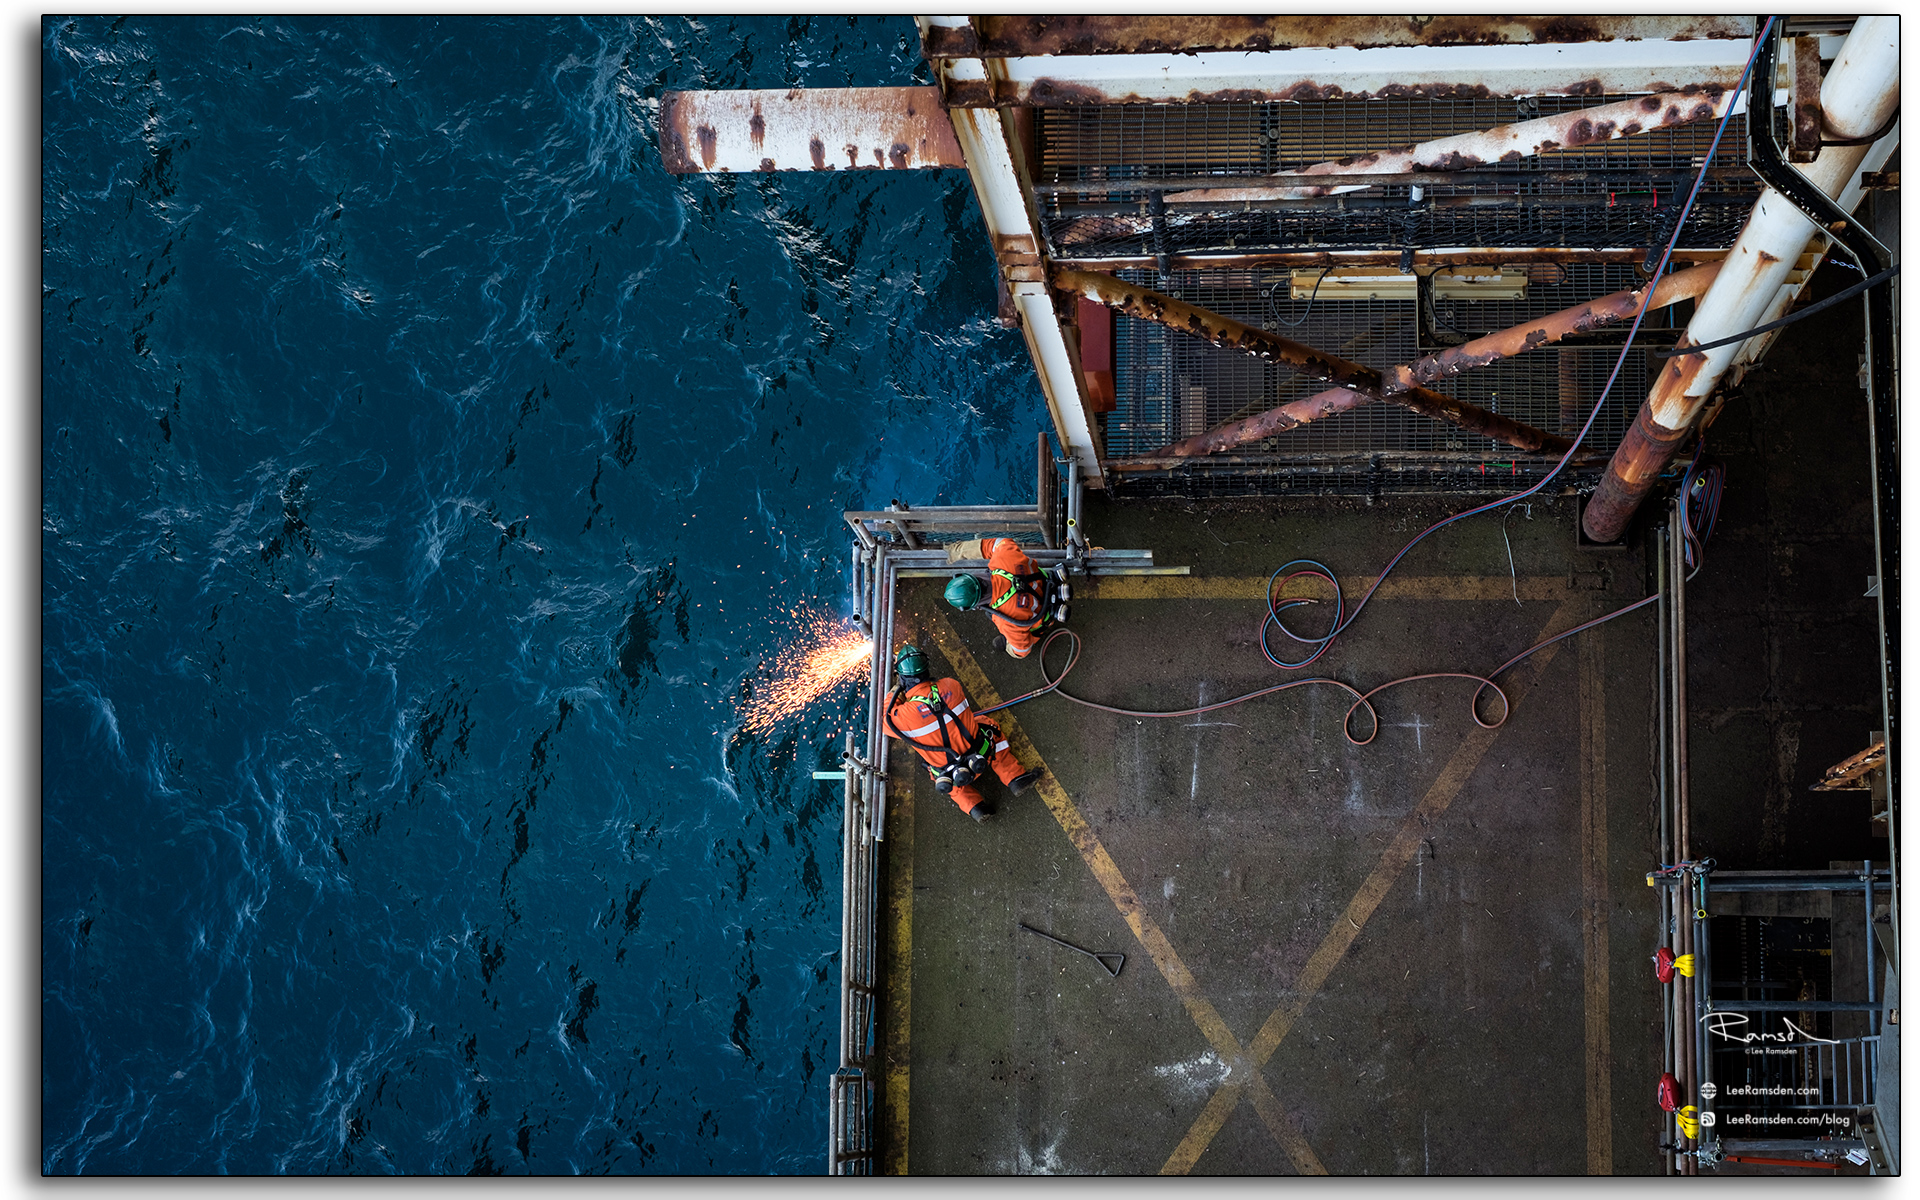 blog, Rig burning, welding, oxygen, acetylene, cutting, BP Miller, Decommissioning, industrial, removal, Saipem, Petrofac, BP, Lee Ramsden, hotwork 01